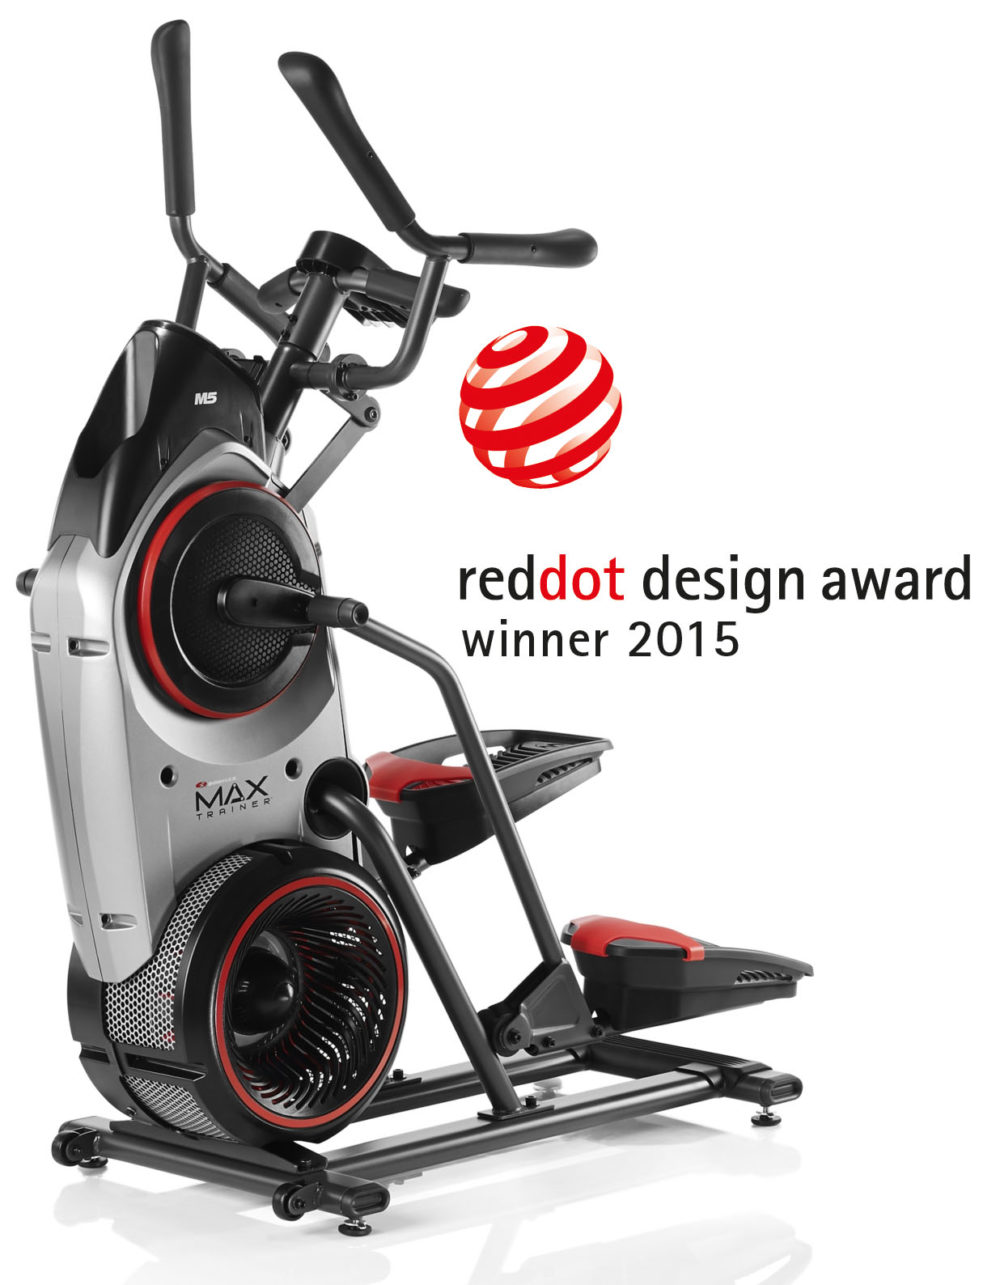 The Bowflex Max Trainer was a winner in the Red Dot design awards 2015